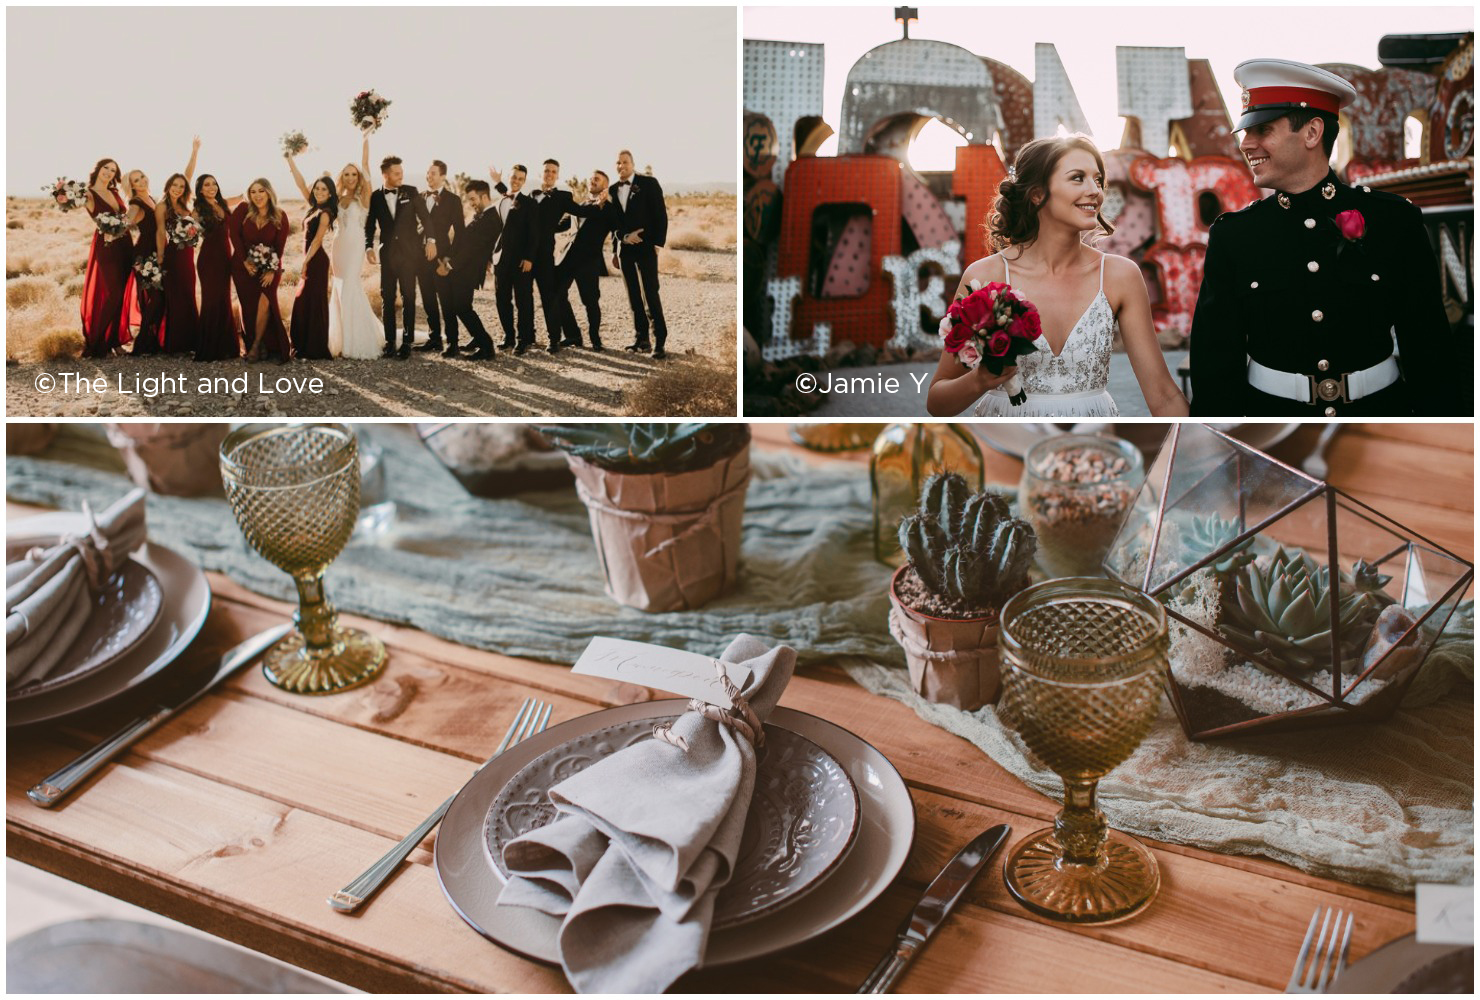 Las Vegas destination wedding ideas, wedding party in the desert, couple in downtown Las Vegas, table setting with cacti